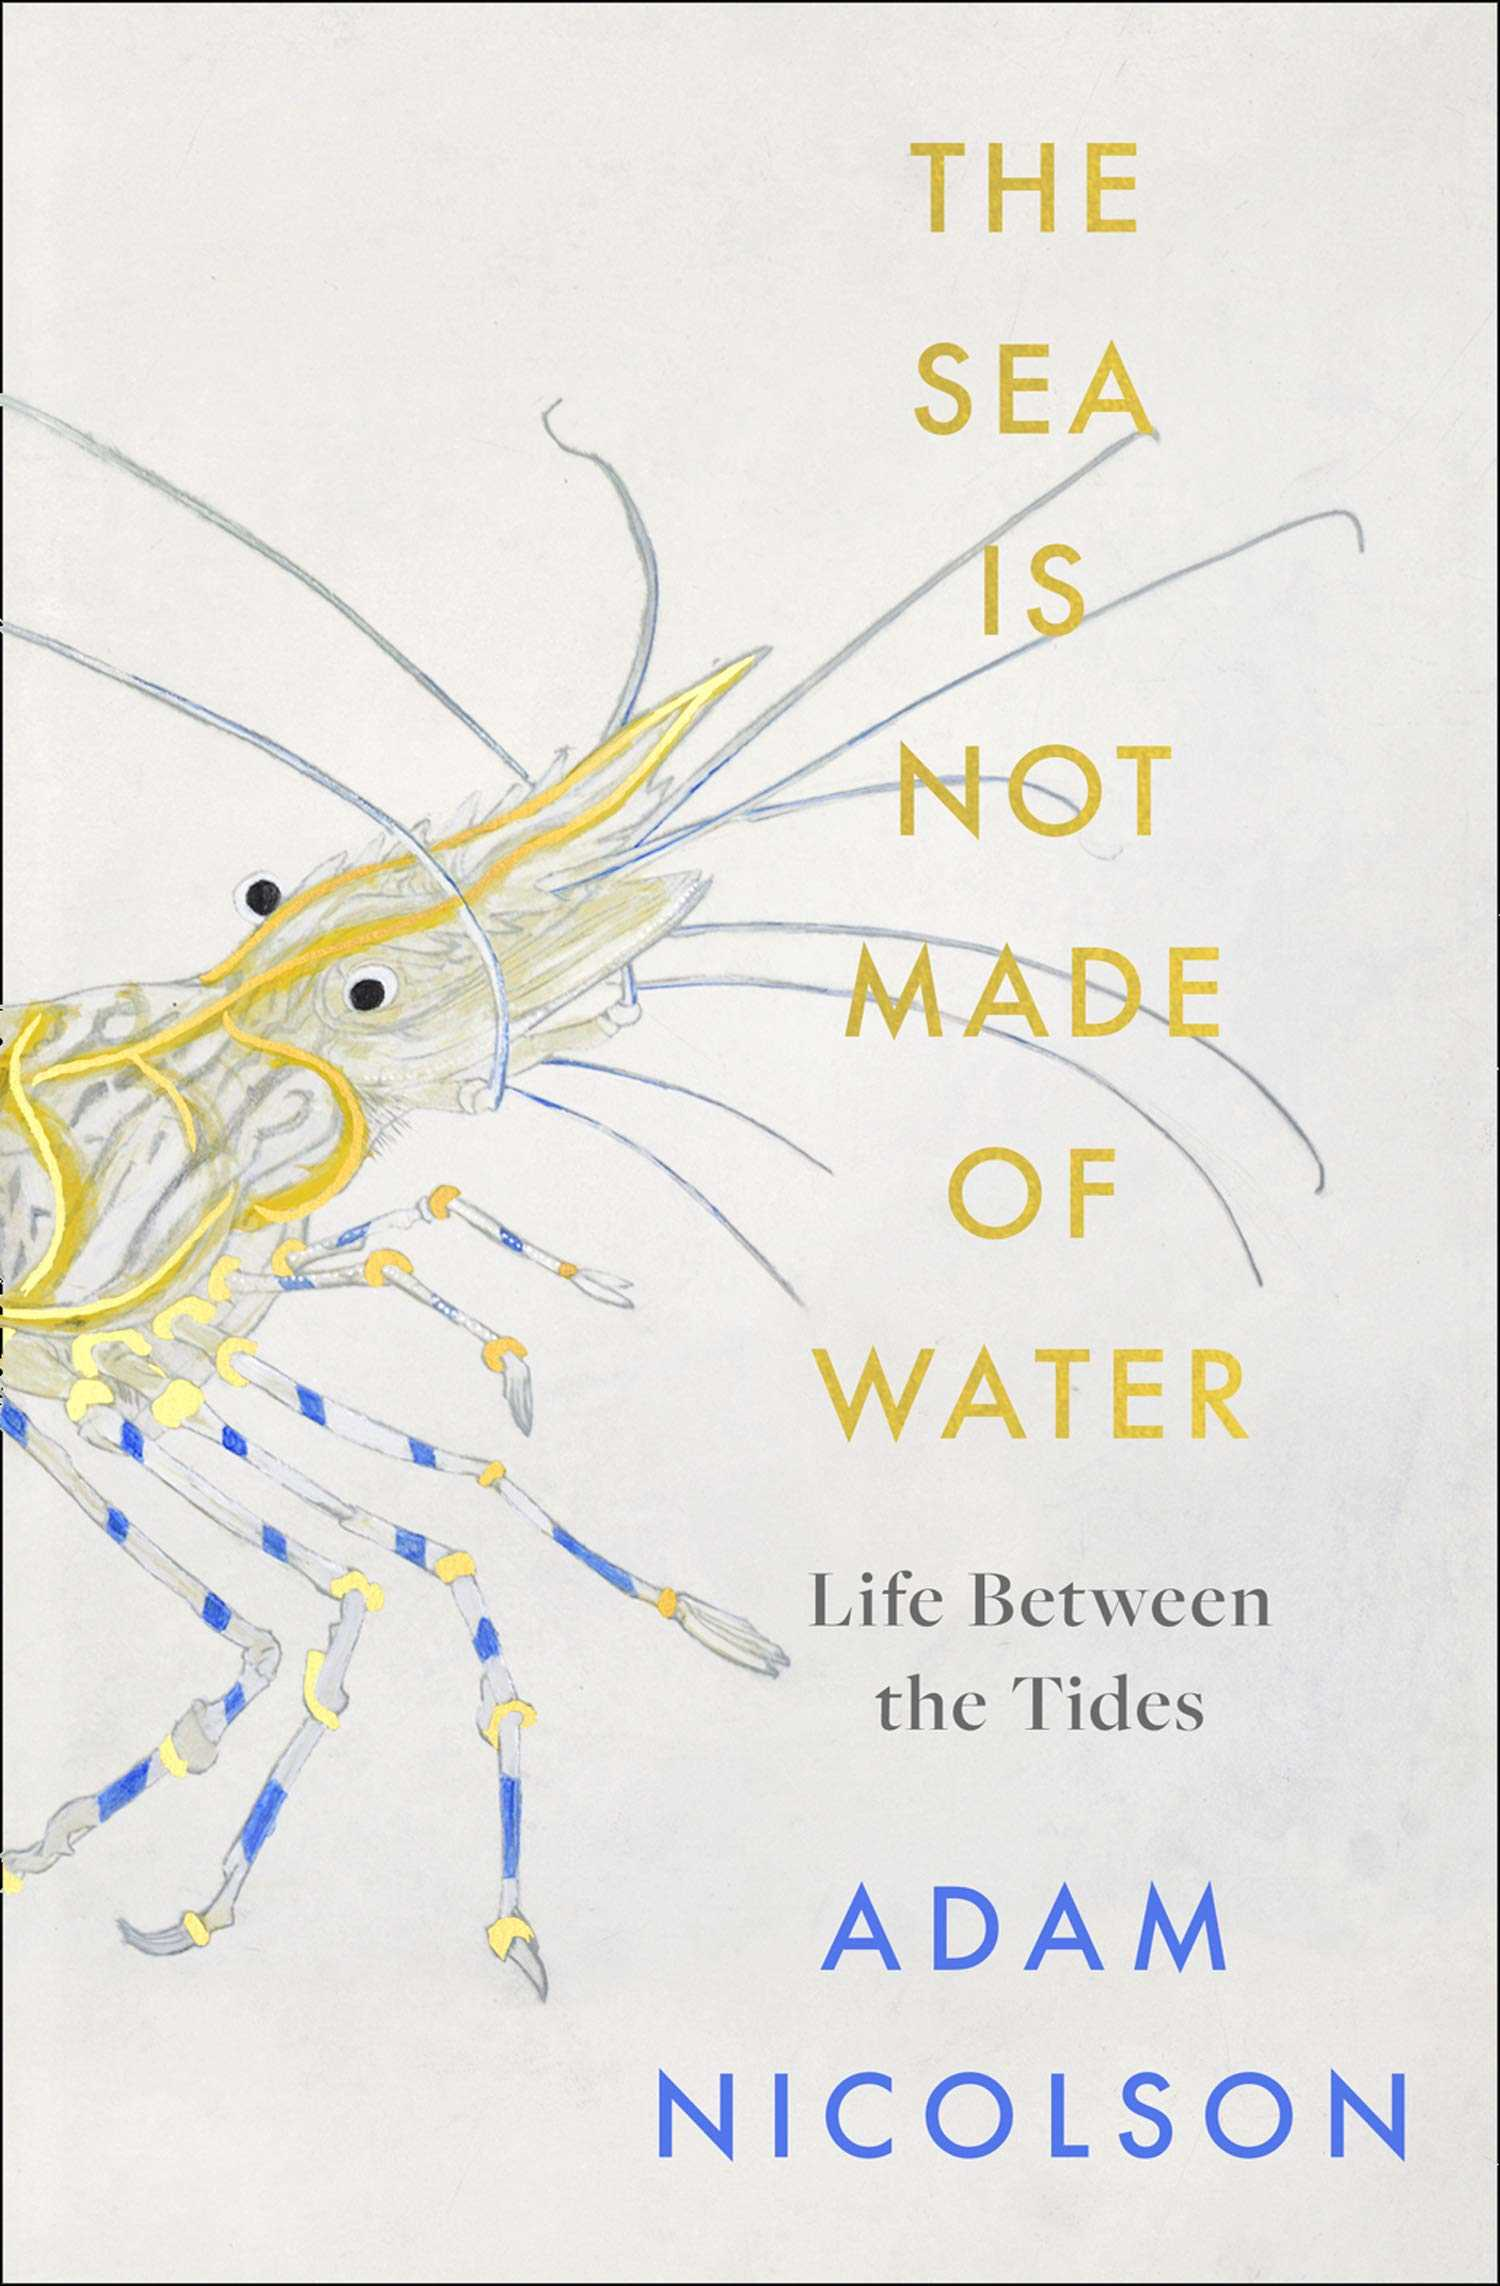 The Sea Is Not Made of Water